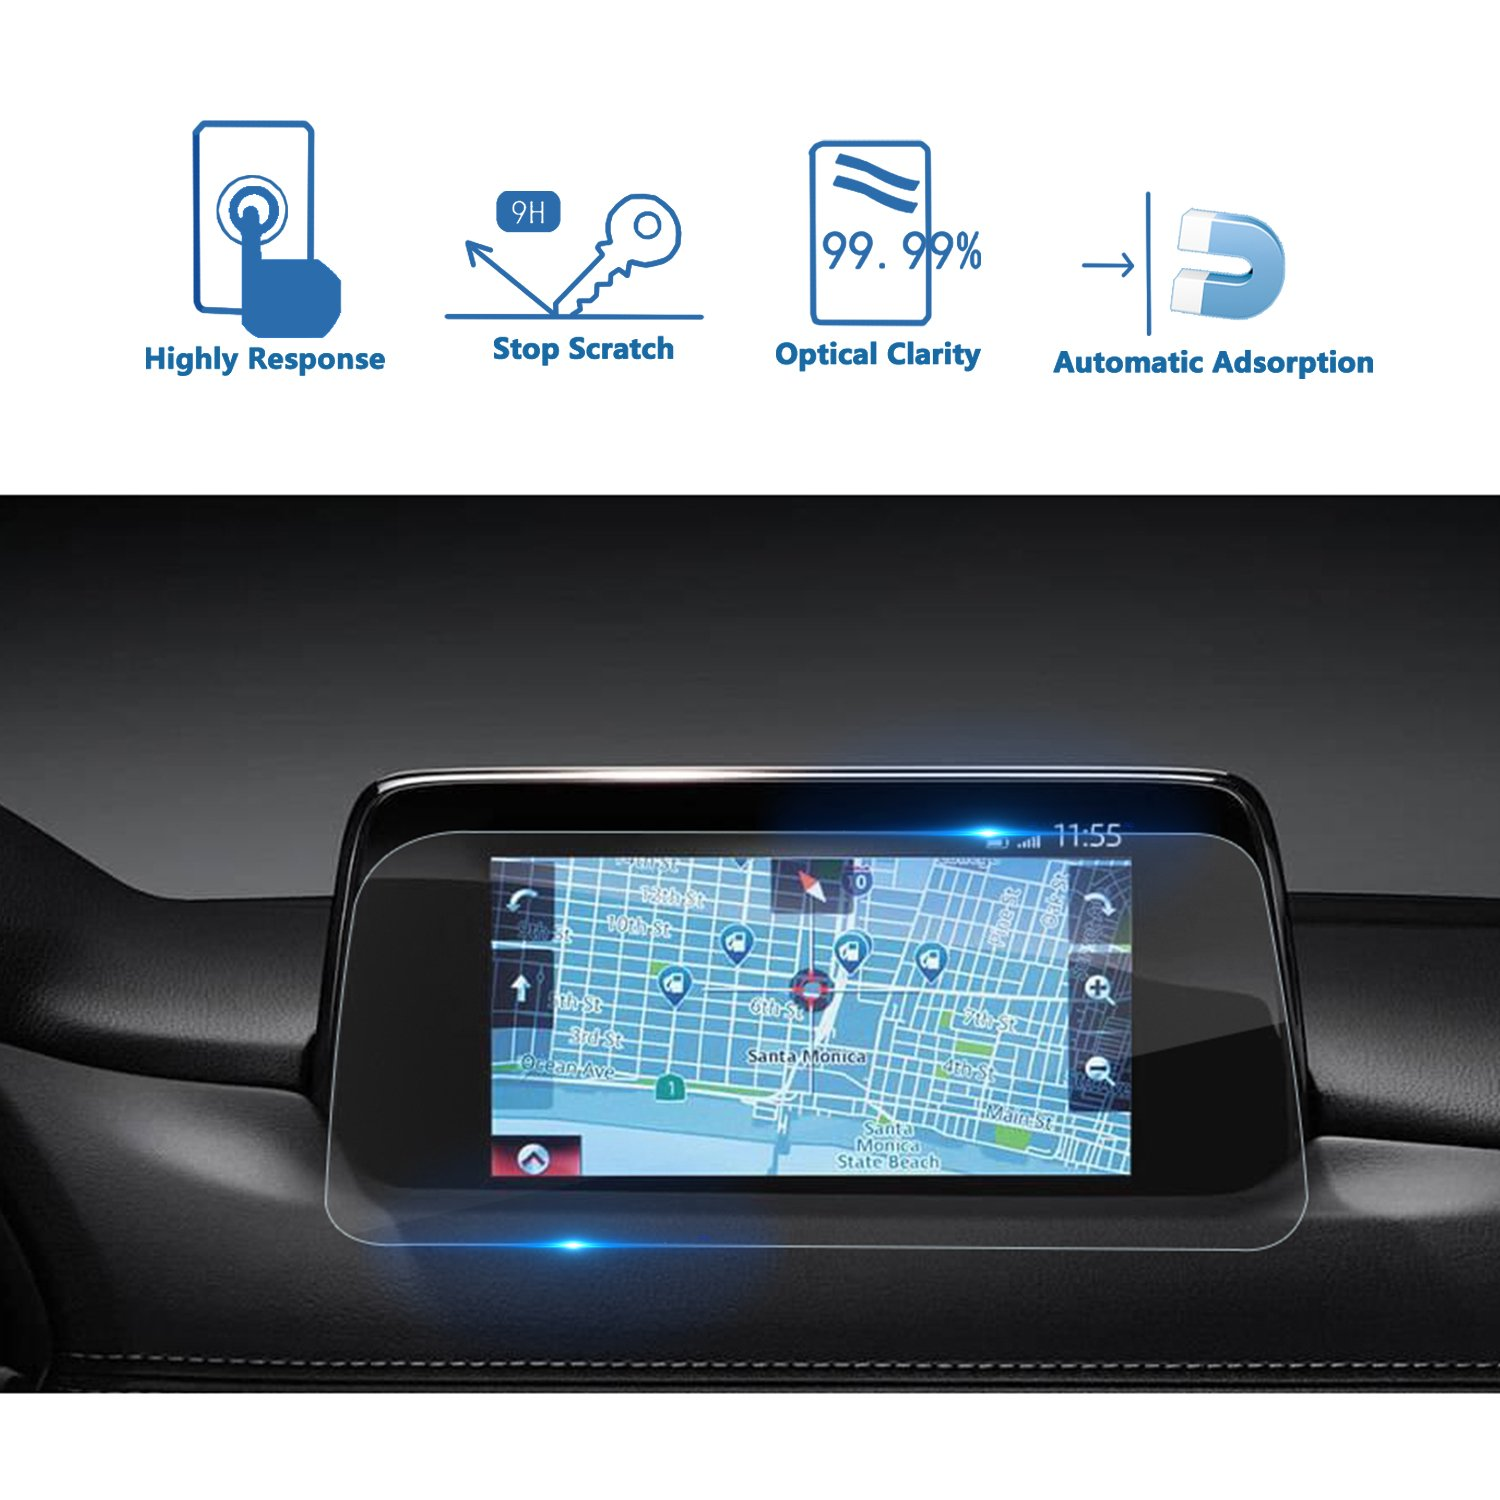 LFOTPP Mazda CX-5 2017 2018 7 Inch MZD CONNECT Car Navigation Screen Protector, [9H] Tempered Glass Infotainment In-Dash Center Touch Screen Protector Anti Scratch High Clarity